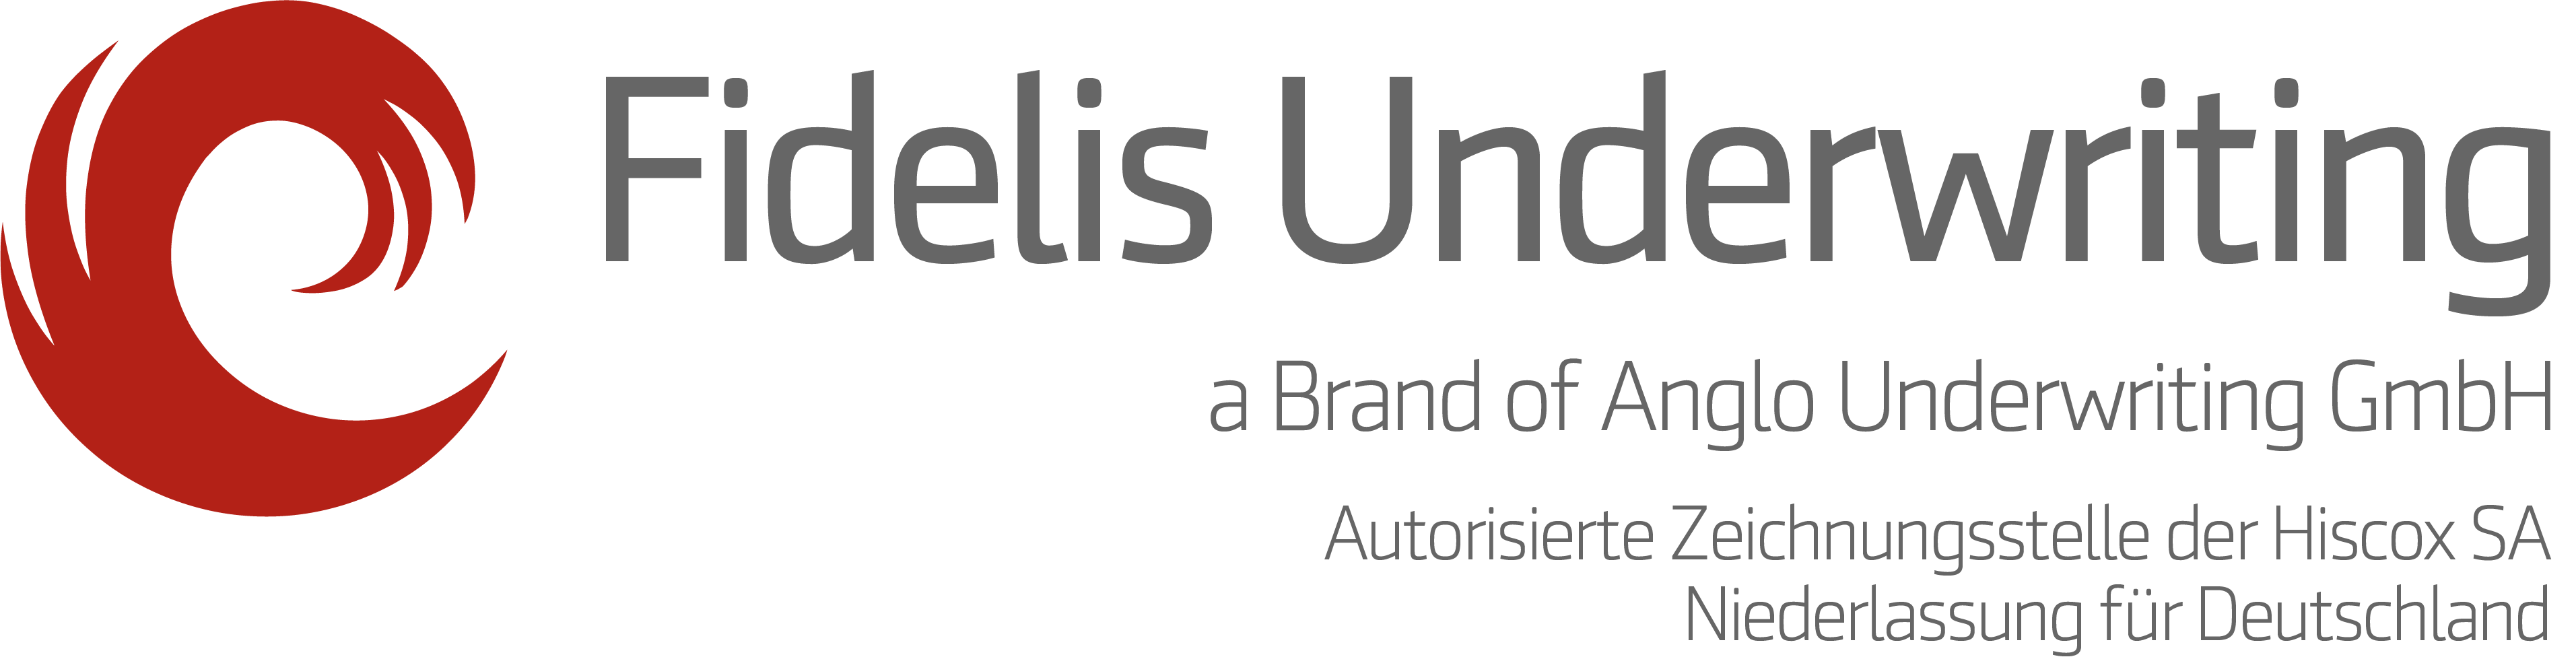 Fidelis a Brand of Anglo Underwriting in Vollmacht von Hiscox SA